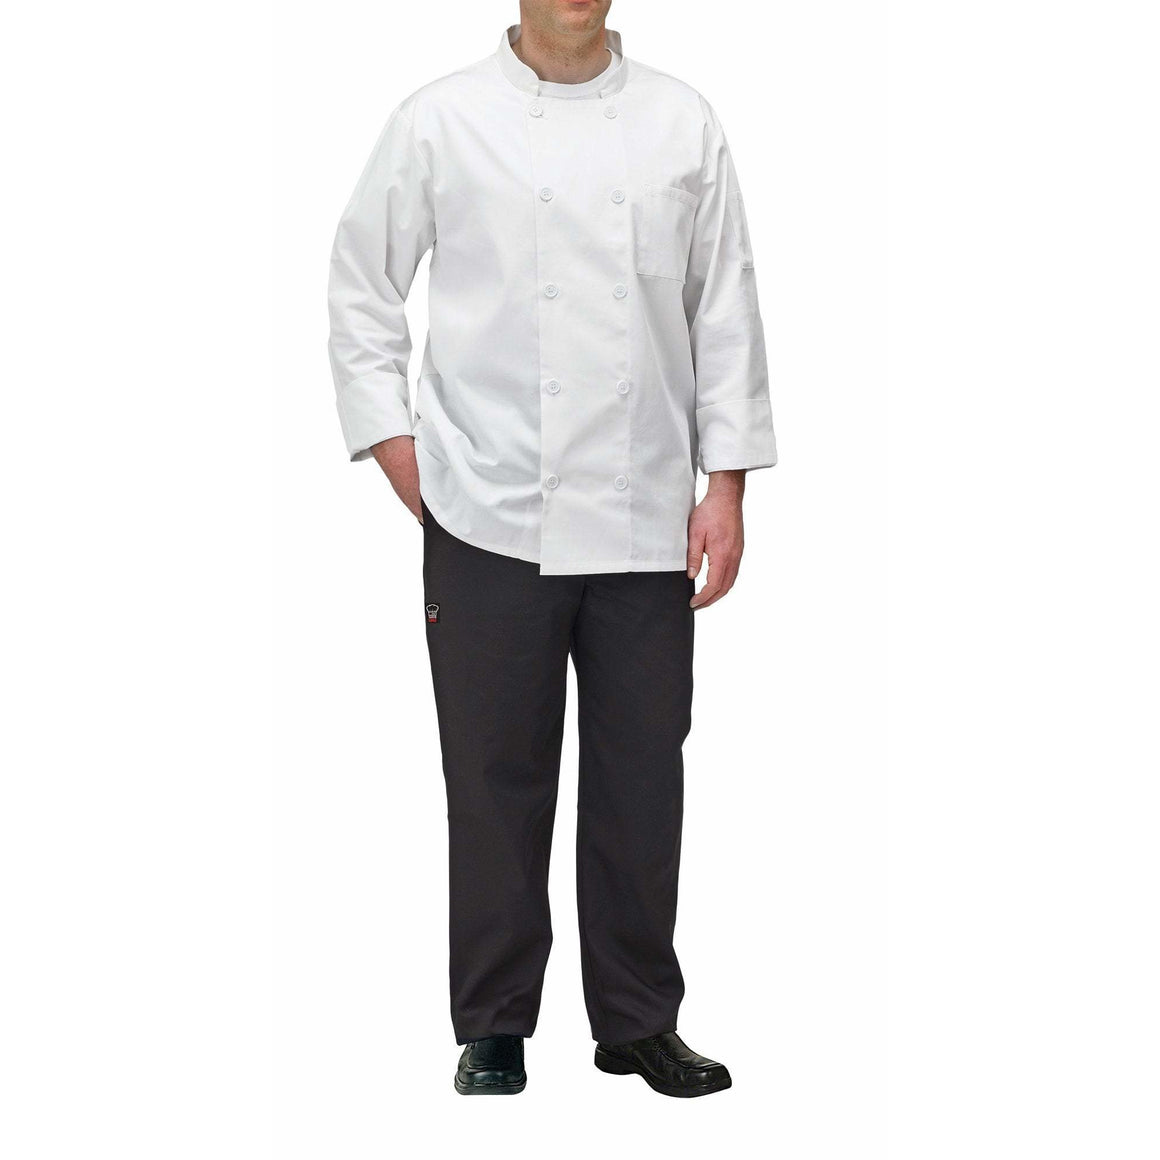 Winco - UNF-5WM - Chef jacket, white, M - Apparel - Maltese & Co New and Used  restaurant Equipment